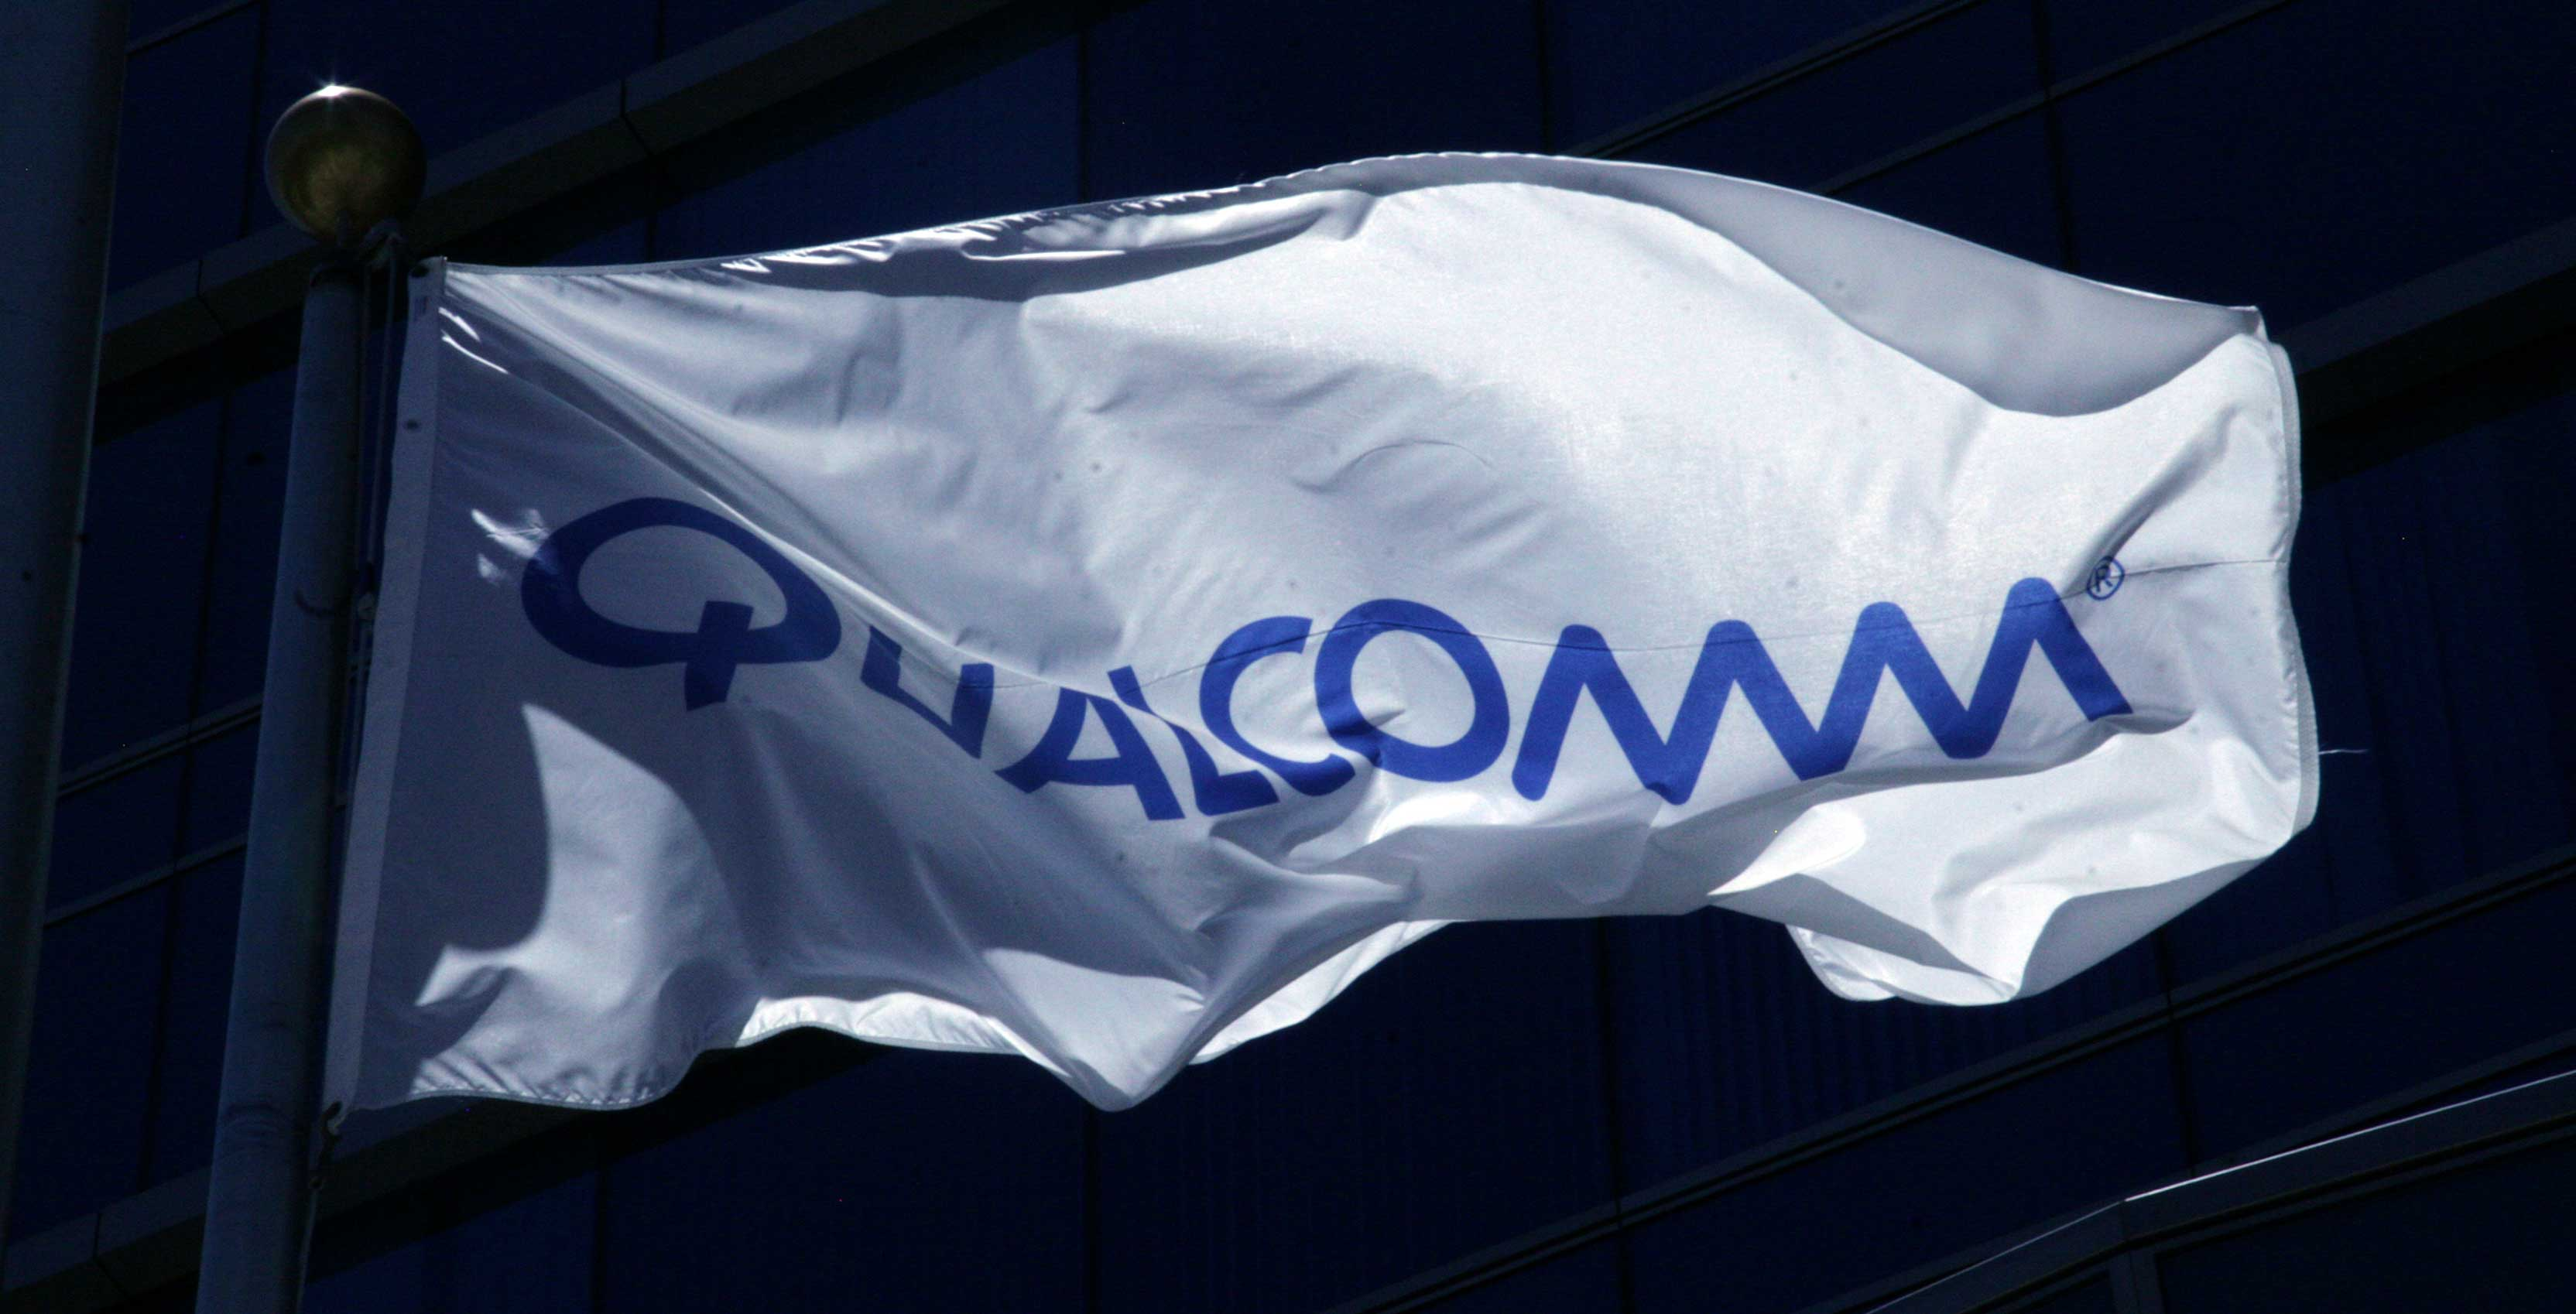 Top of the chart stocks in today's market: Broadcom Limited (AVGO)